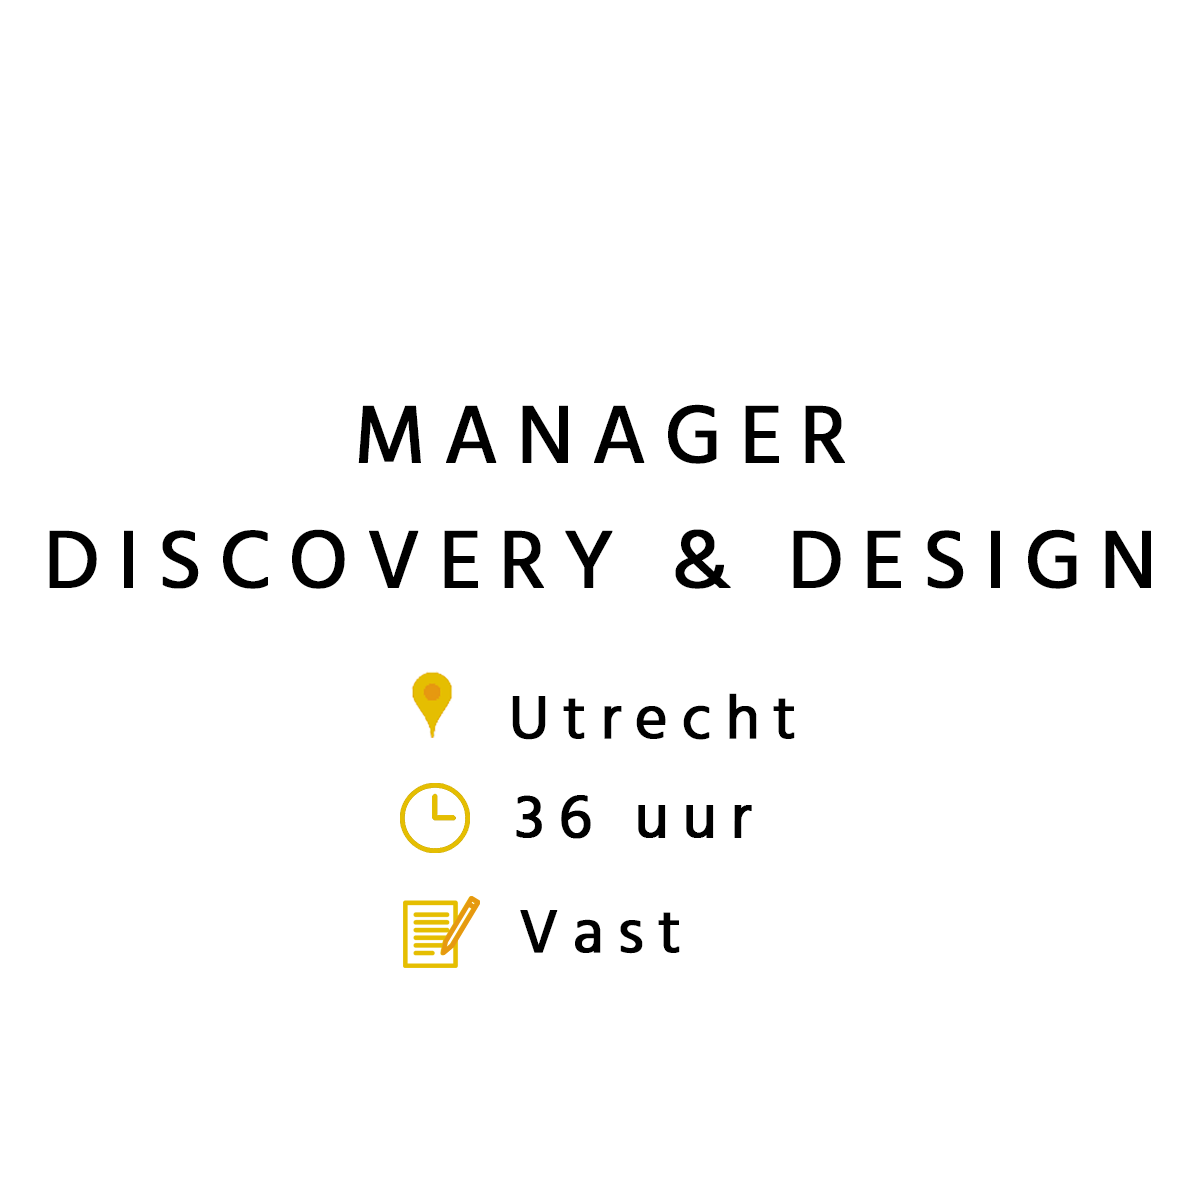 Manager Discovery & Design